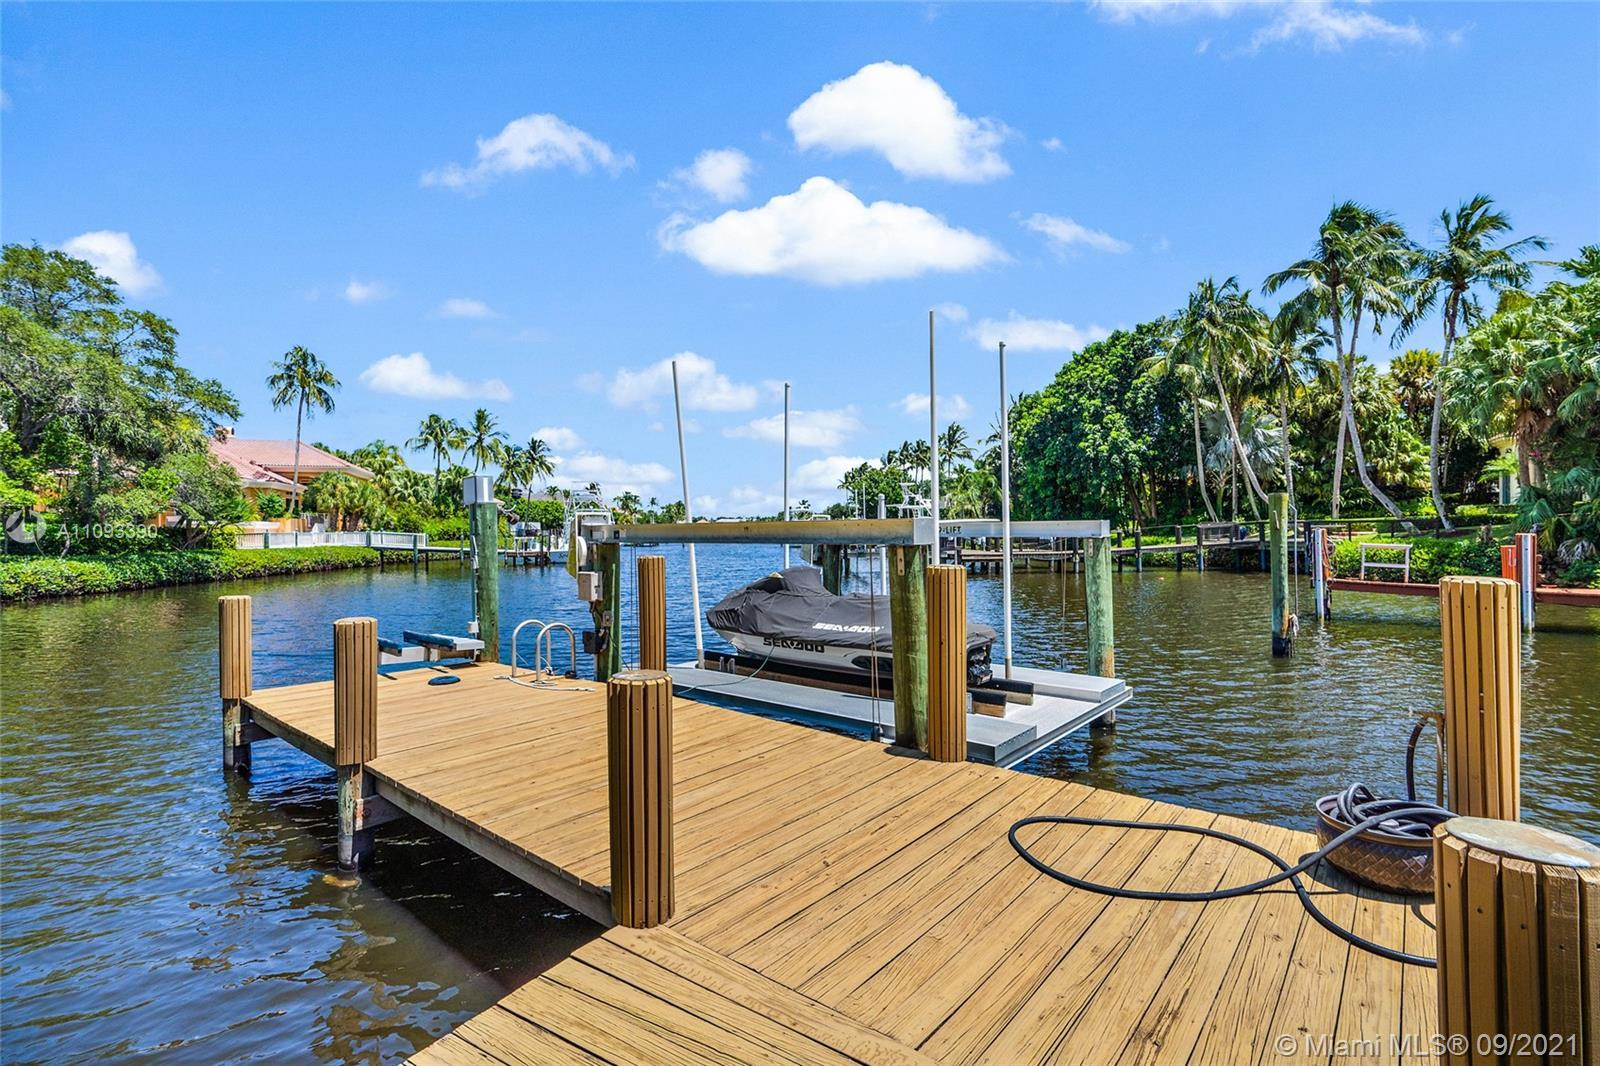 Expanded Courtyard Home with long water views. The home is lushly landscaped for privacy. Enjoy your